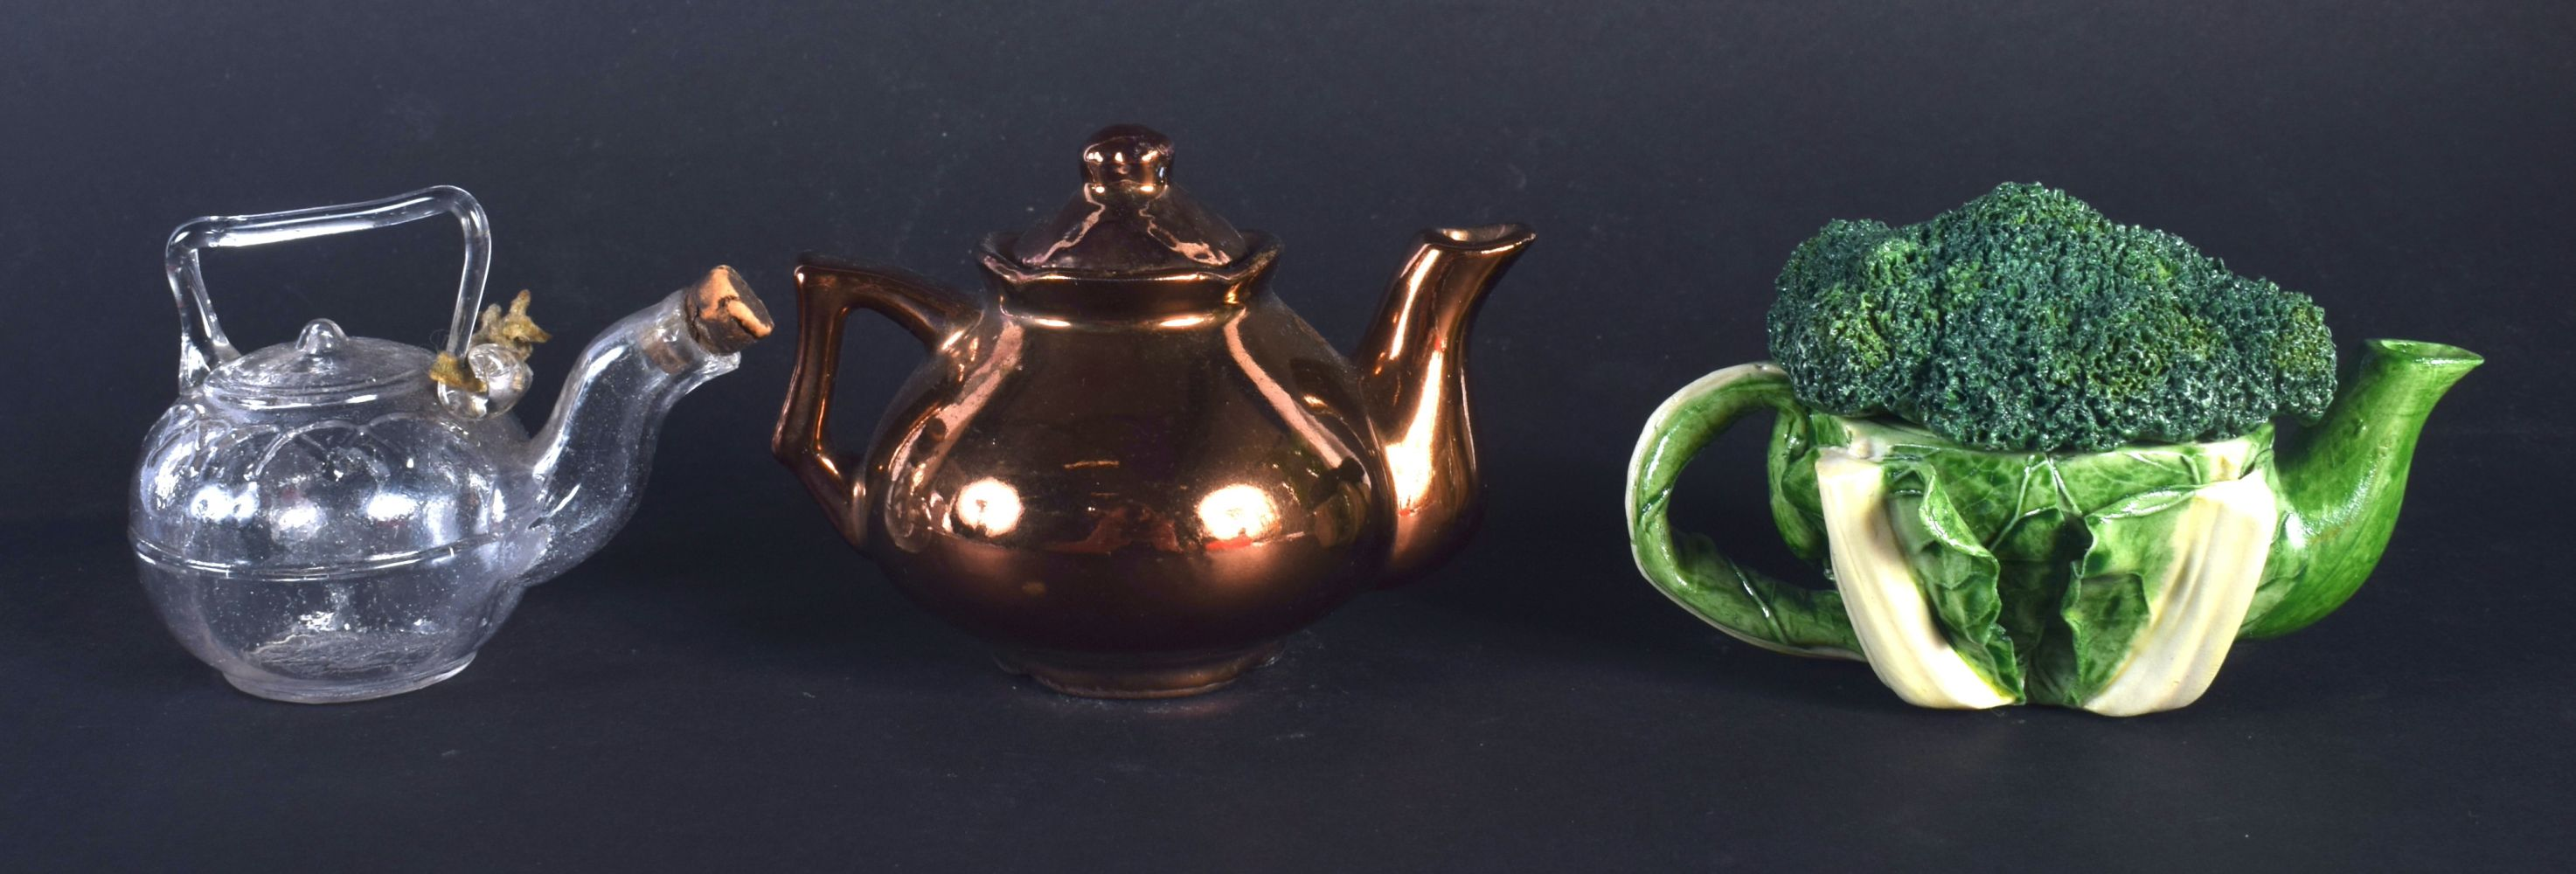 AN EXTREMELY RARE VICTORIAN MINIATURE GLASS TEAPOT possibly for oil, lozenge mark to base, together - Image 2 of 4